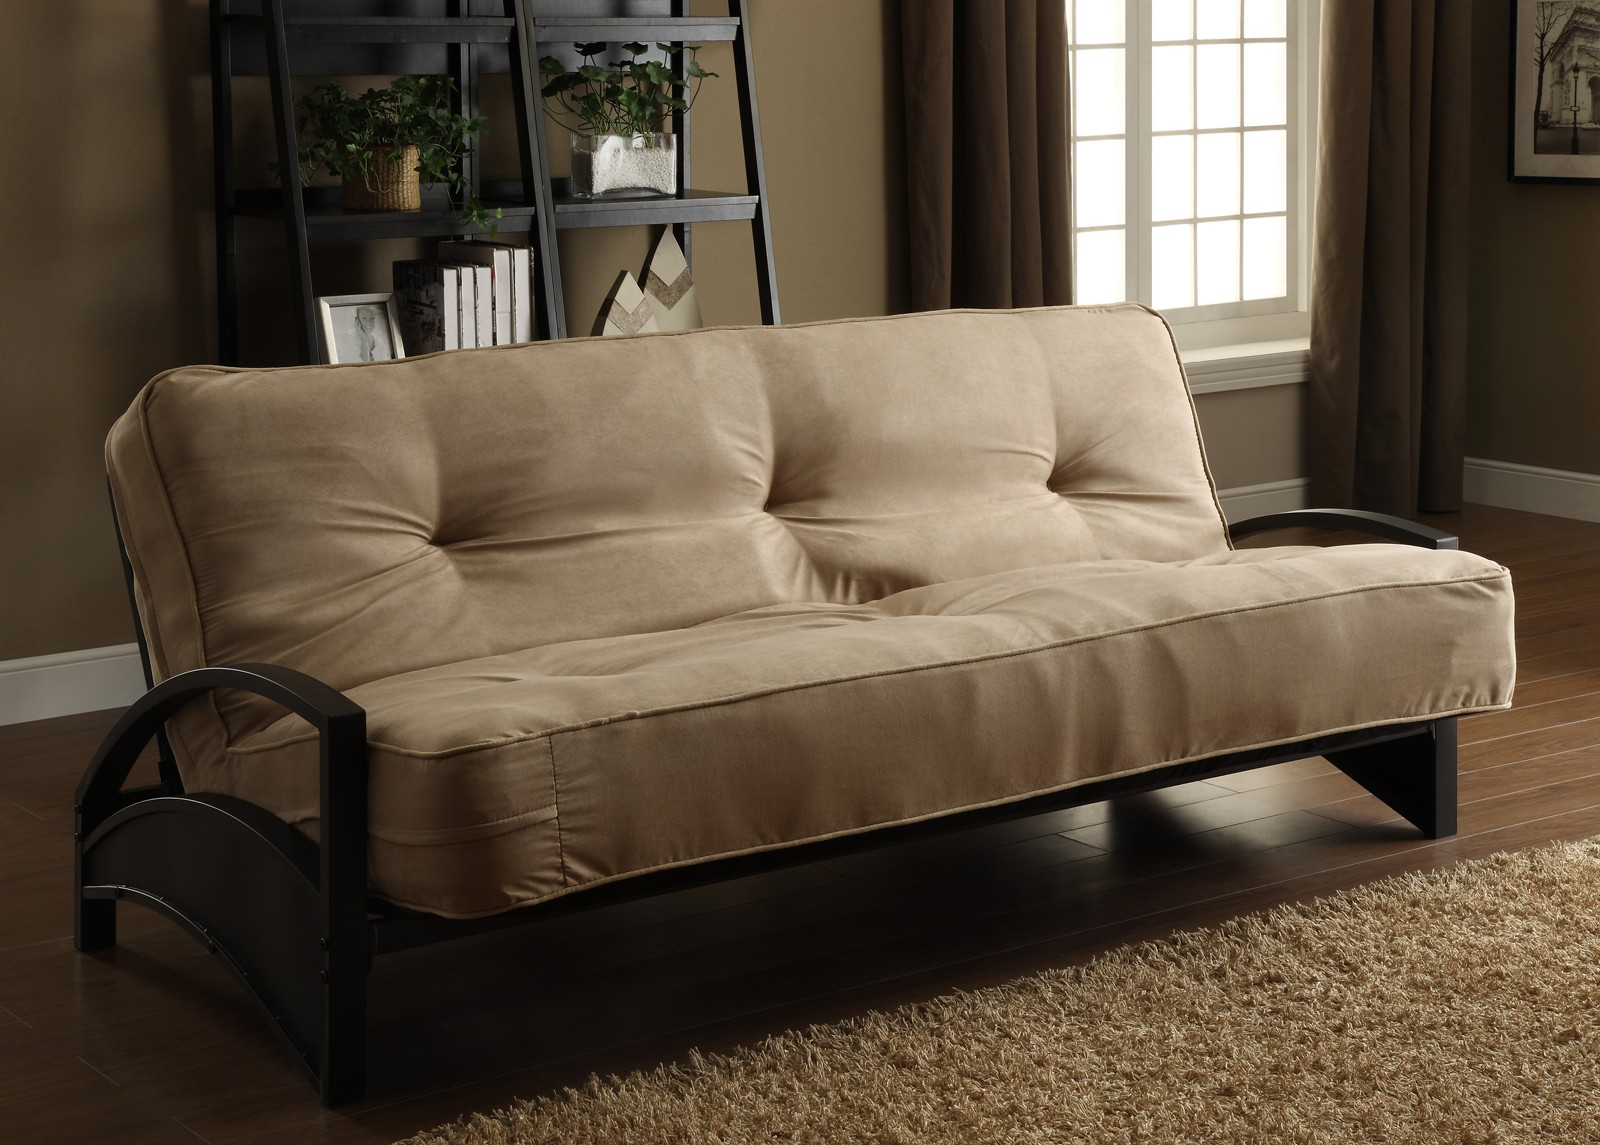 Image of: Fancy Futon Ideas